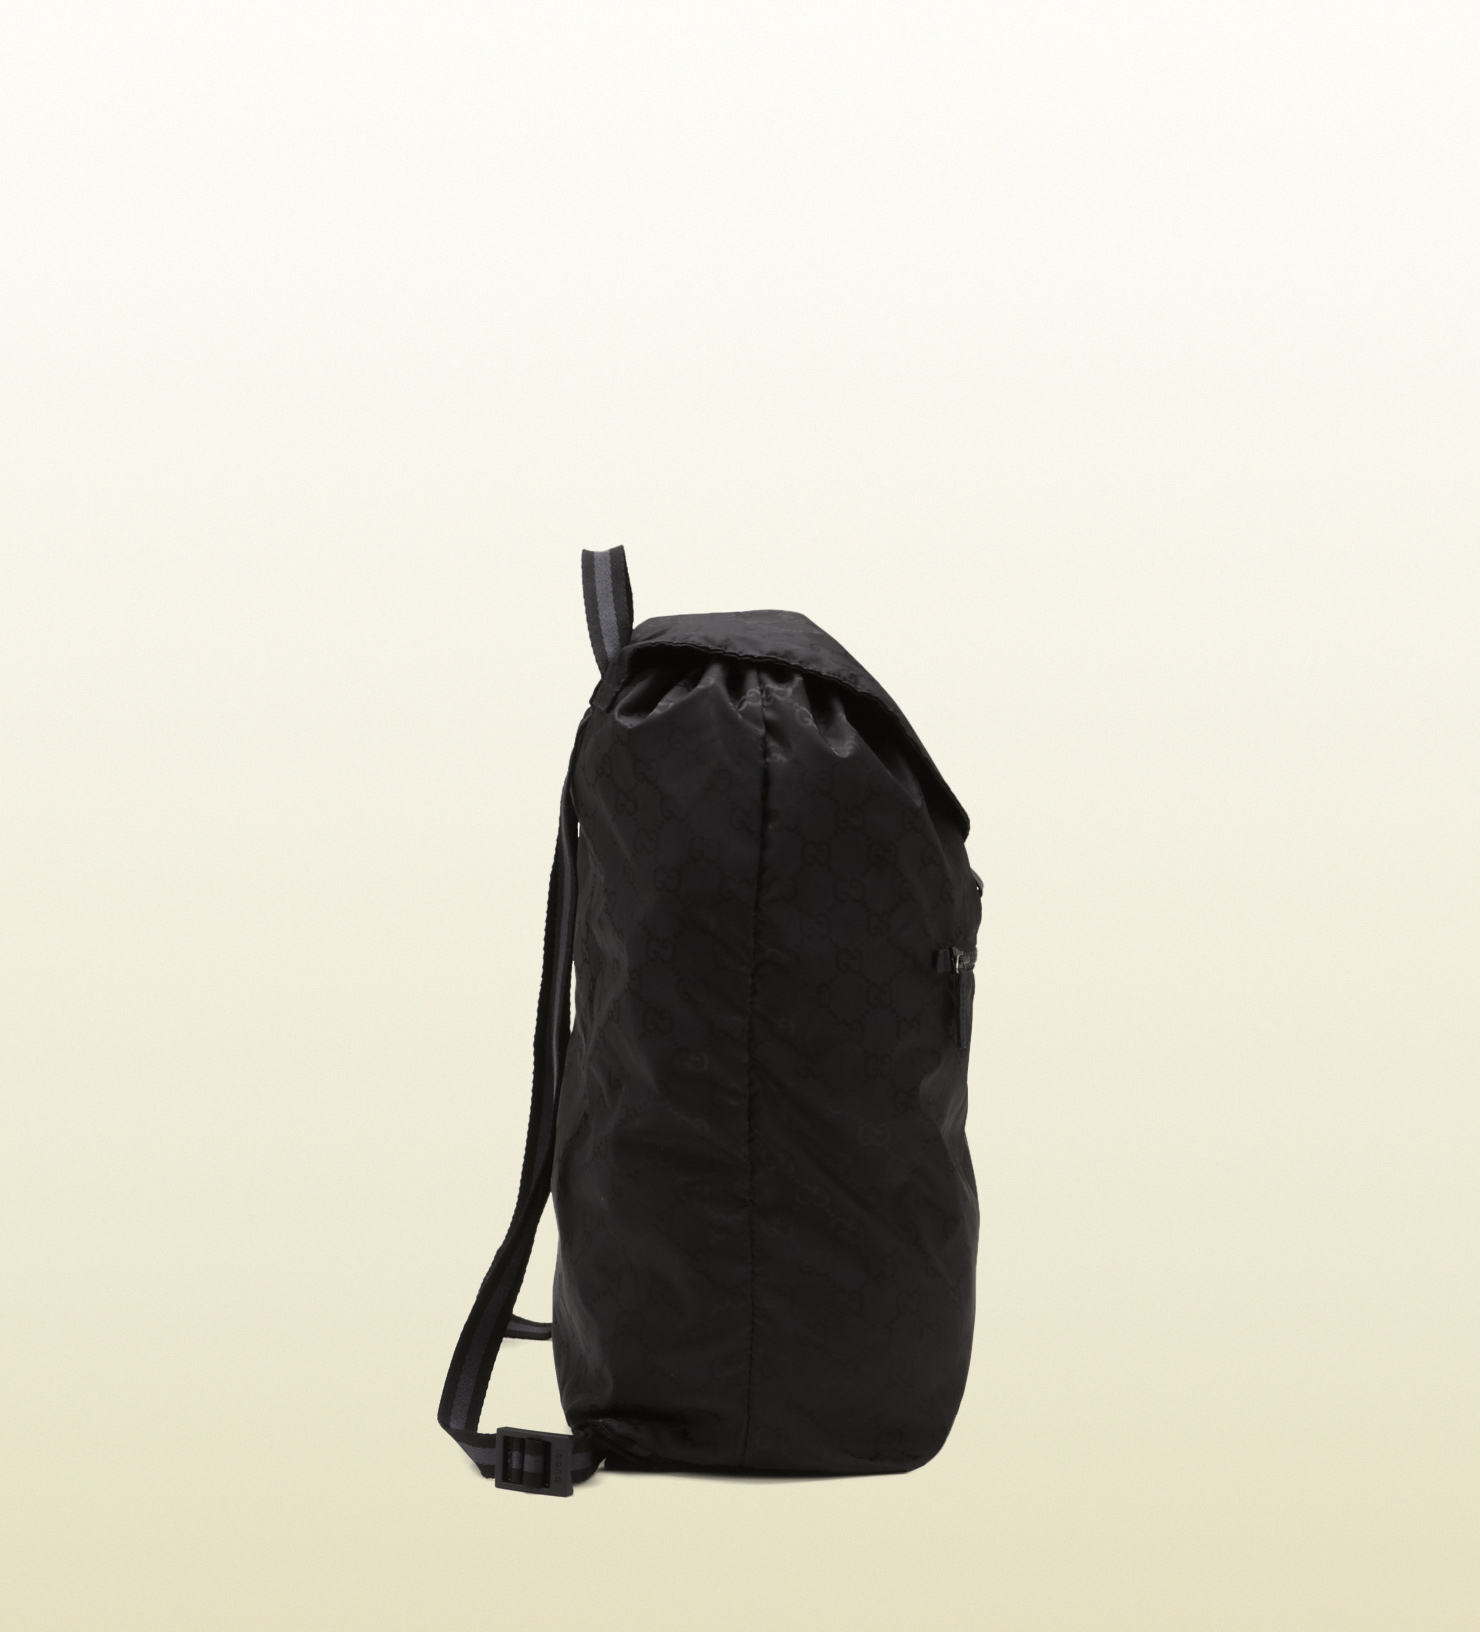 Gucci Black Gg Nylon Backpack From Viaggio Collection in Black for ... 022370ce9572a